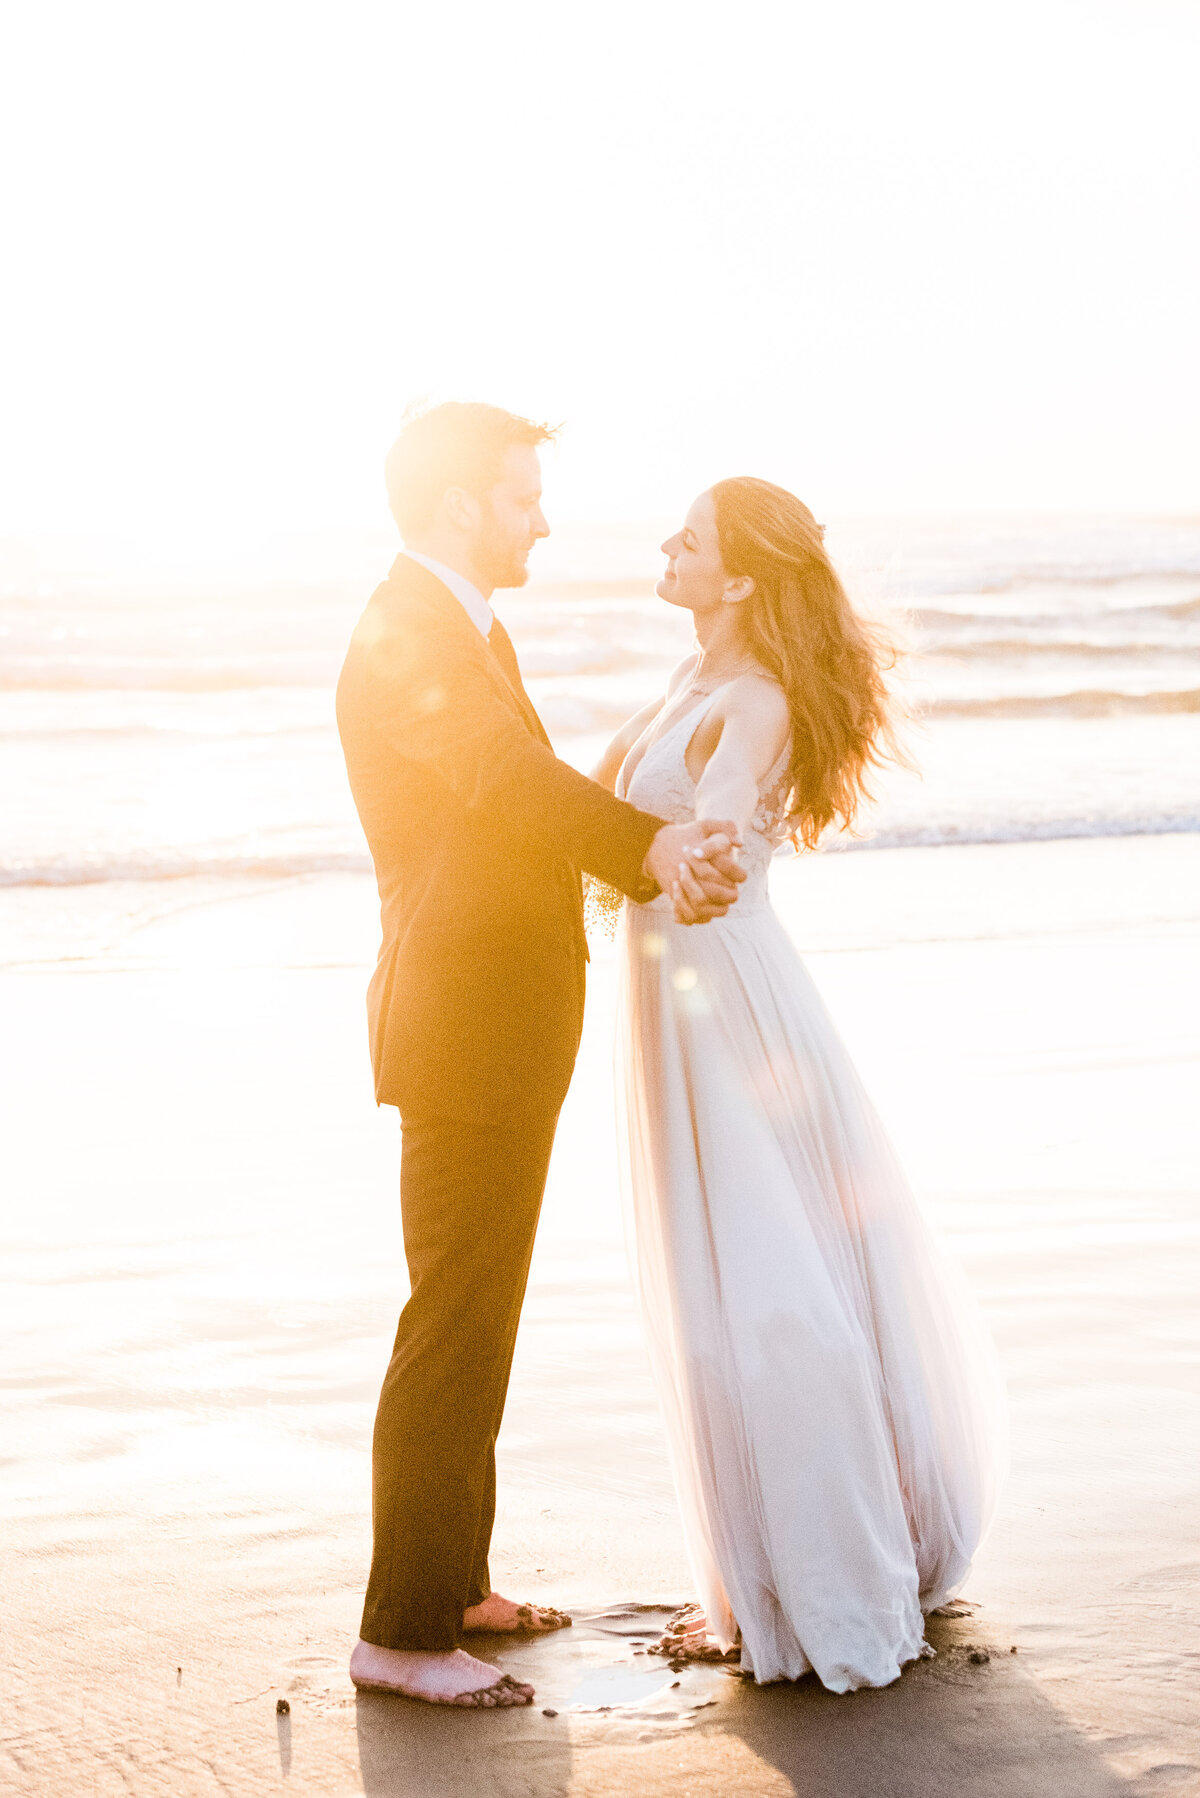 Cannon-Beach-Elopement-Photographer-69